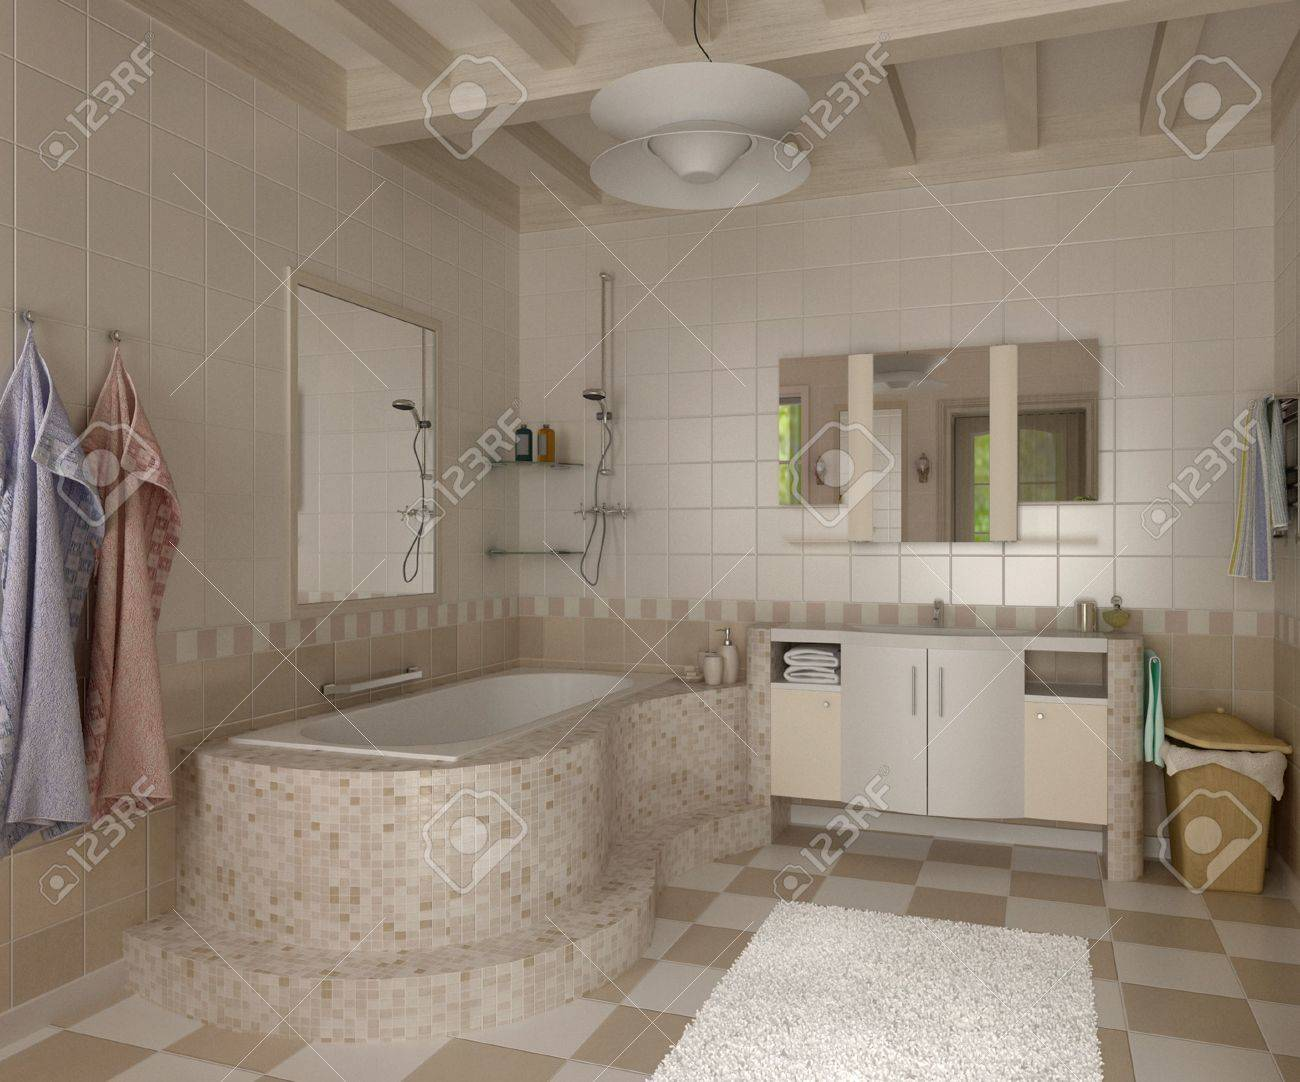 3d Bathroom Tiles 3d Bathroom With Toilet And Shower In The Yellow Tile Stock Photo